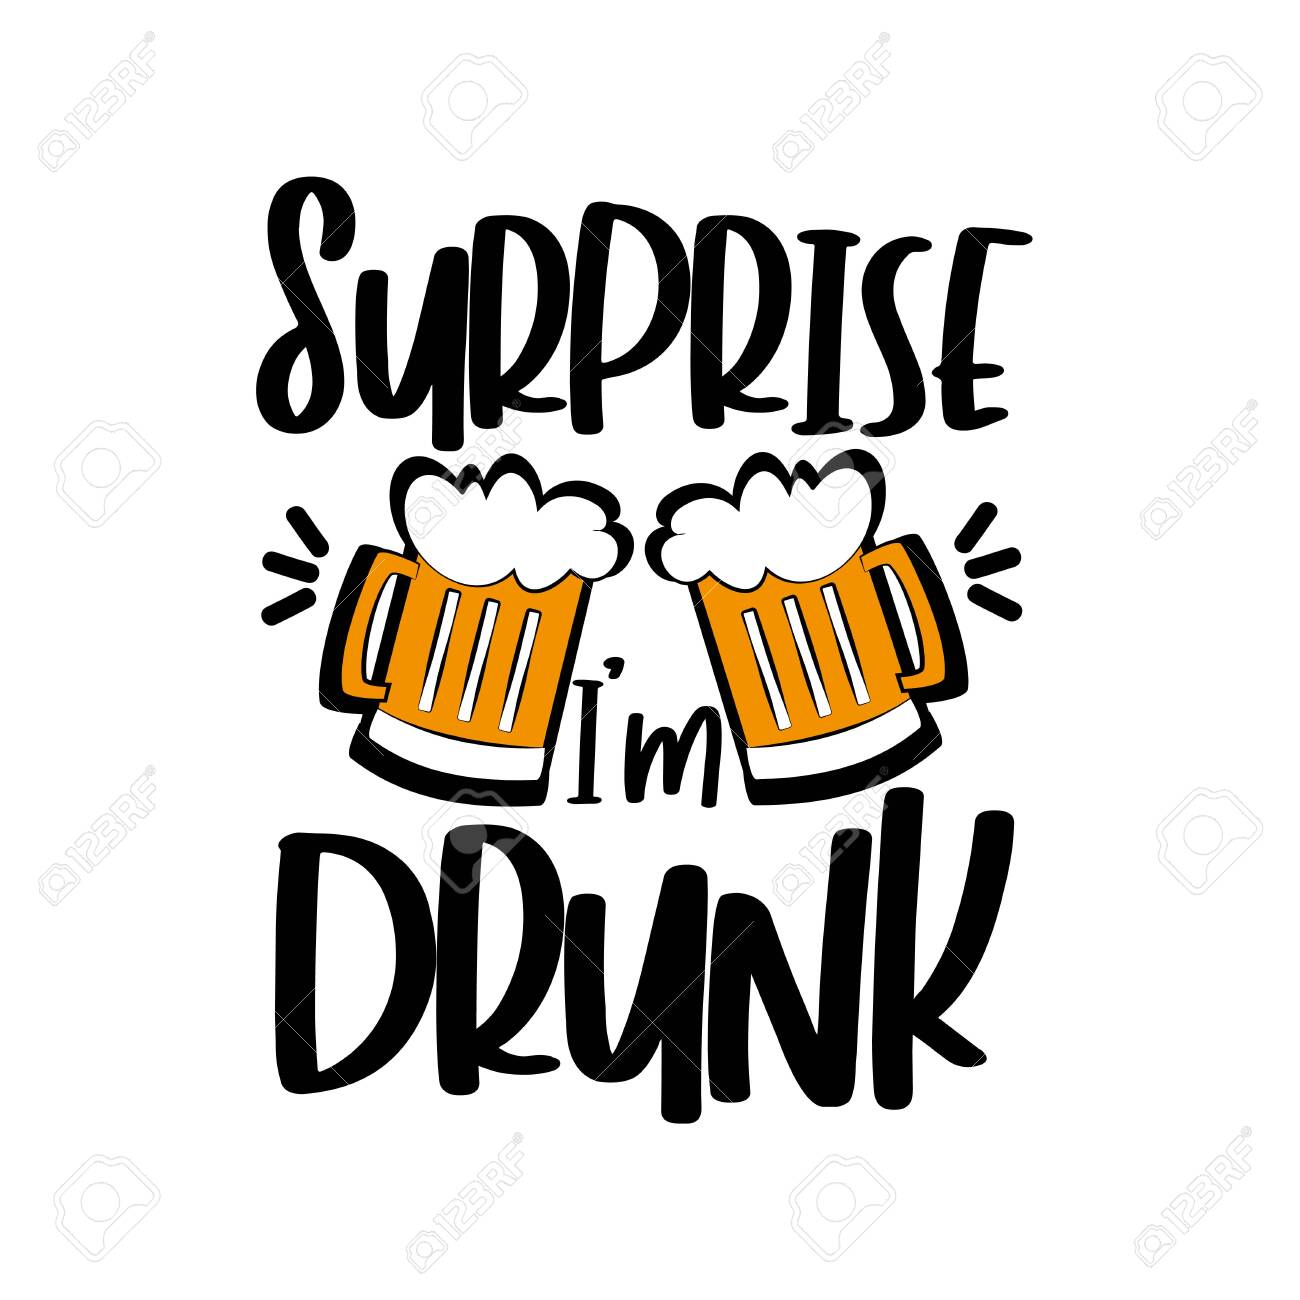 Surprise i'm drunk- funny text with beer mugs. Good for T shirt pint, poster, greeting card, funny gifts design. - 149164105